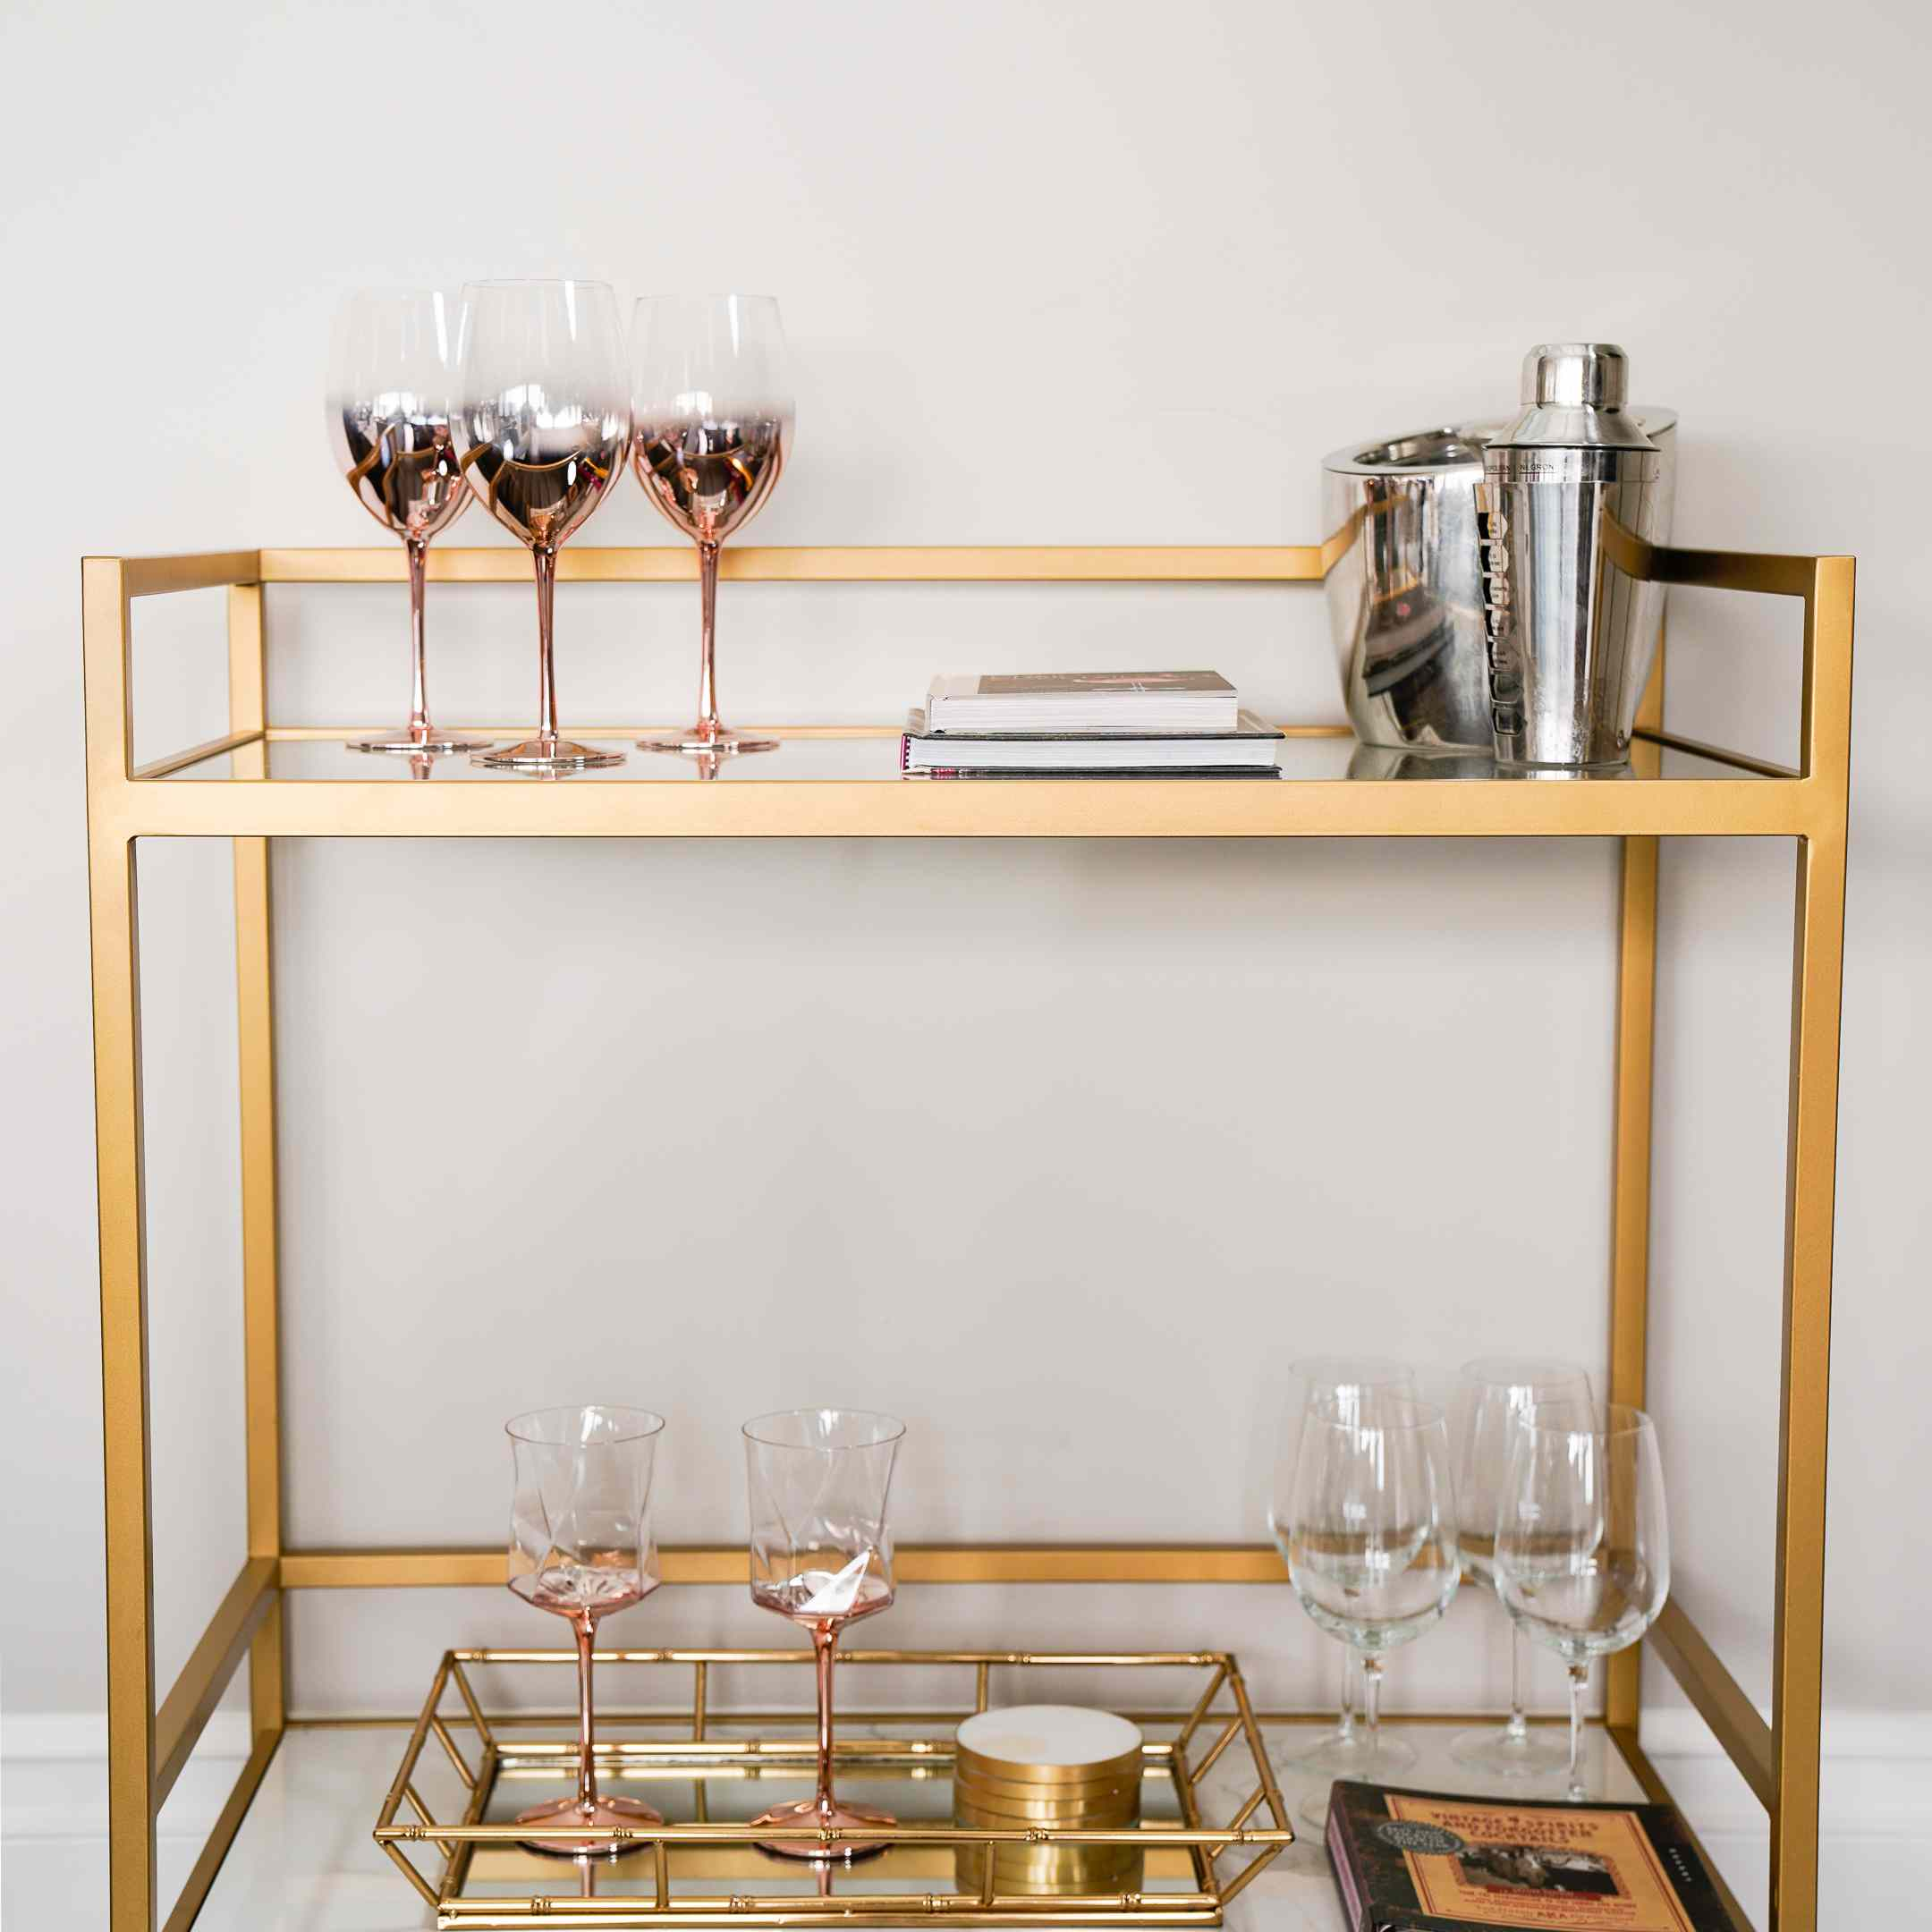 Chrishell Stause's new bar cart with all the accessories